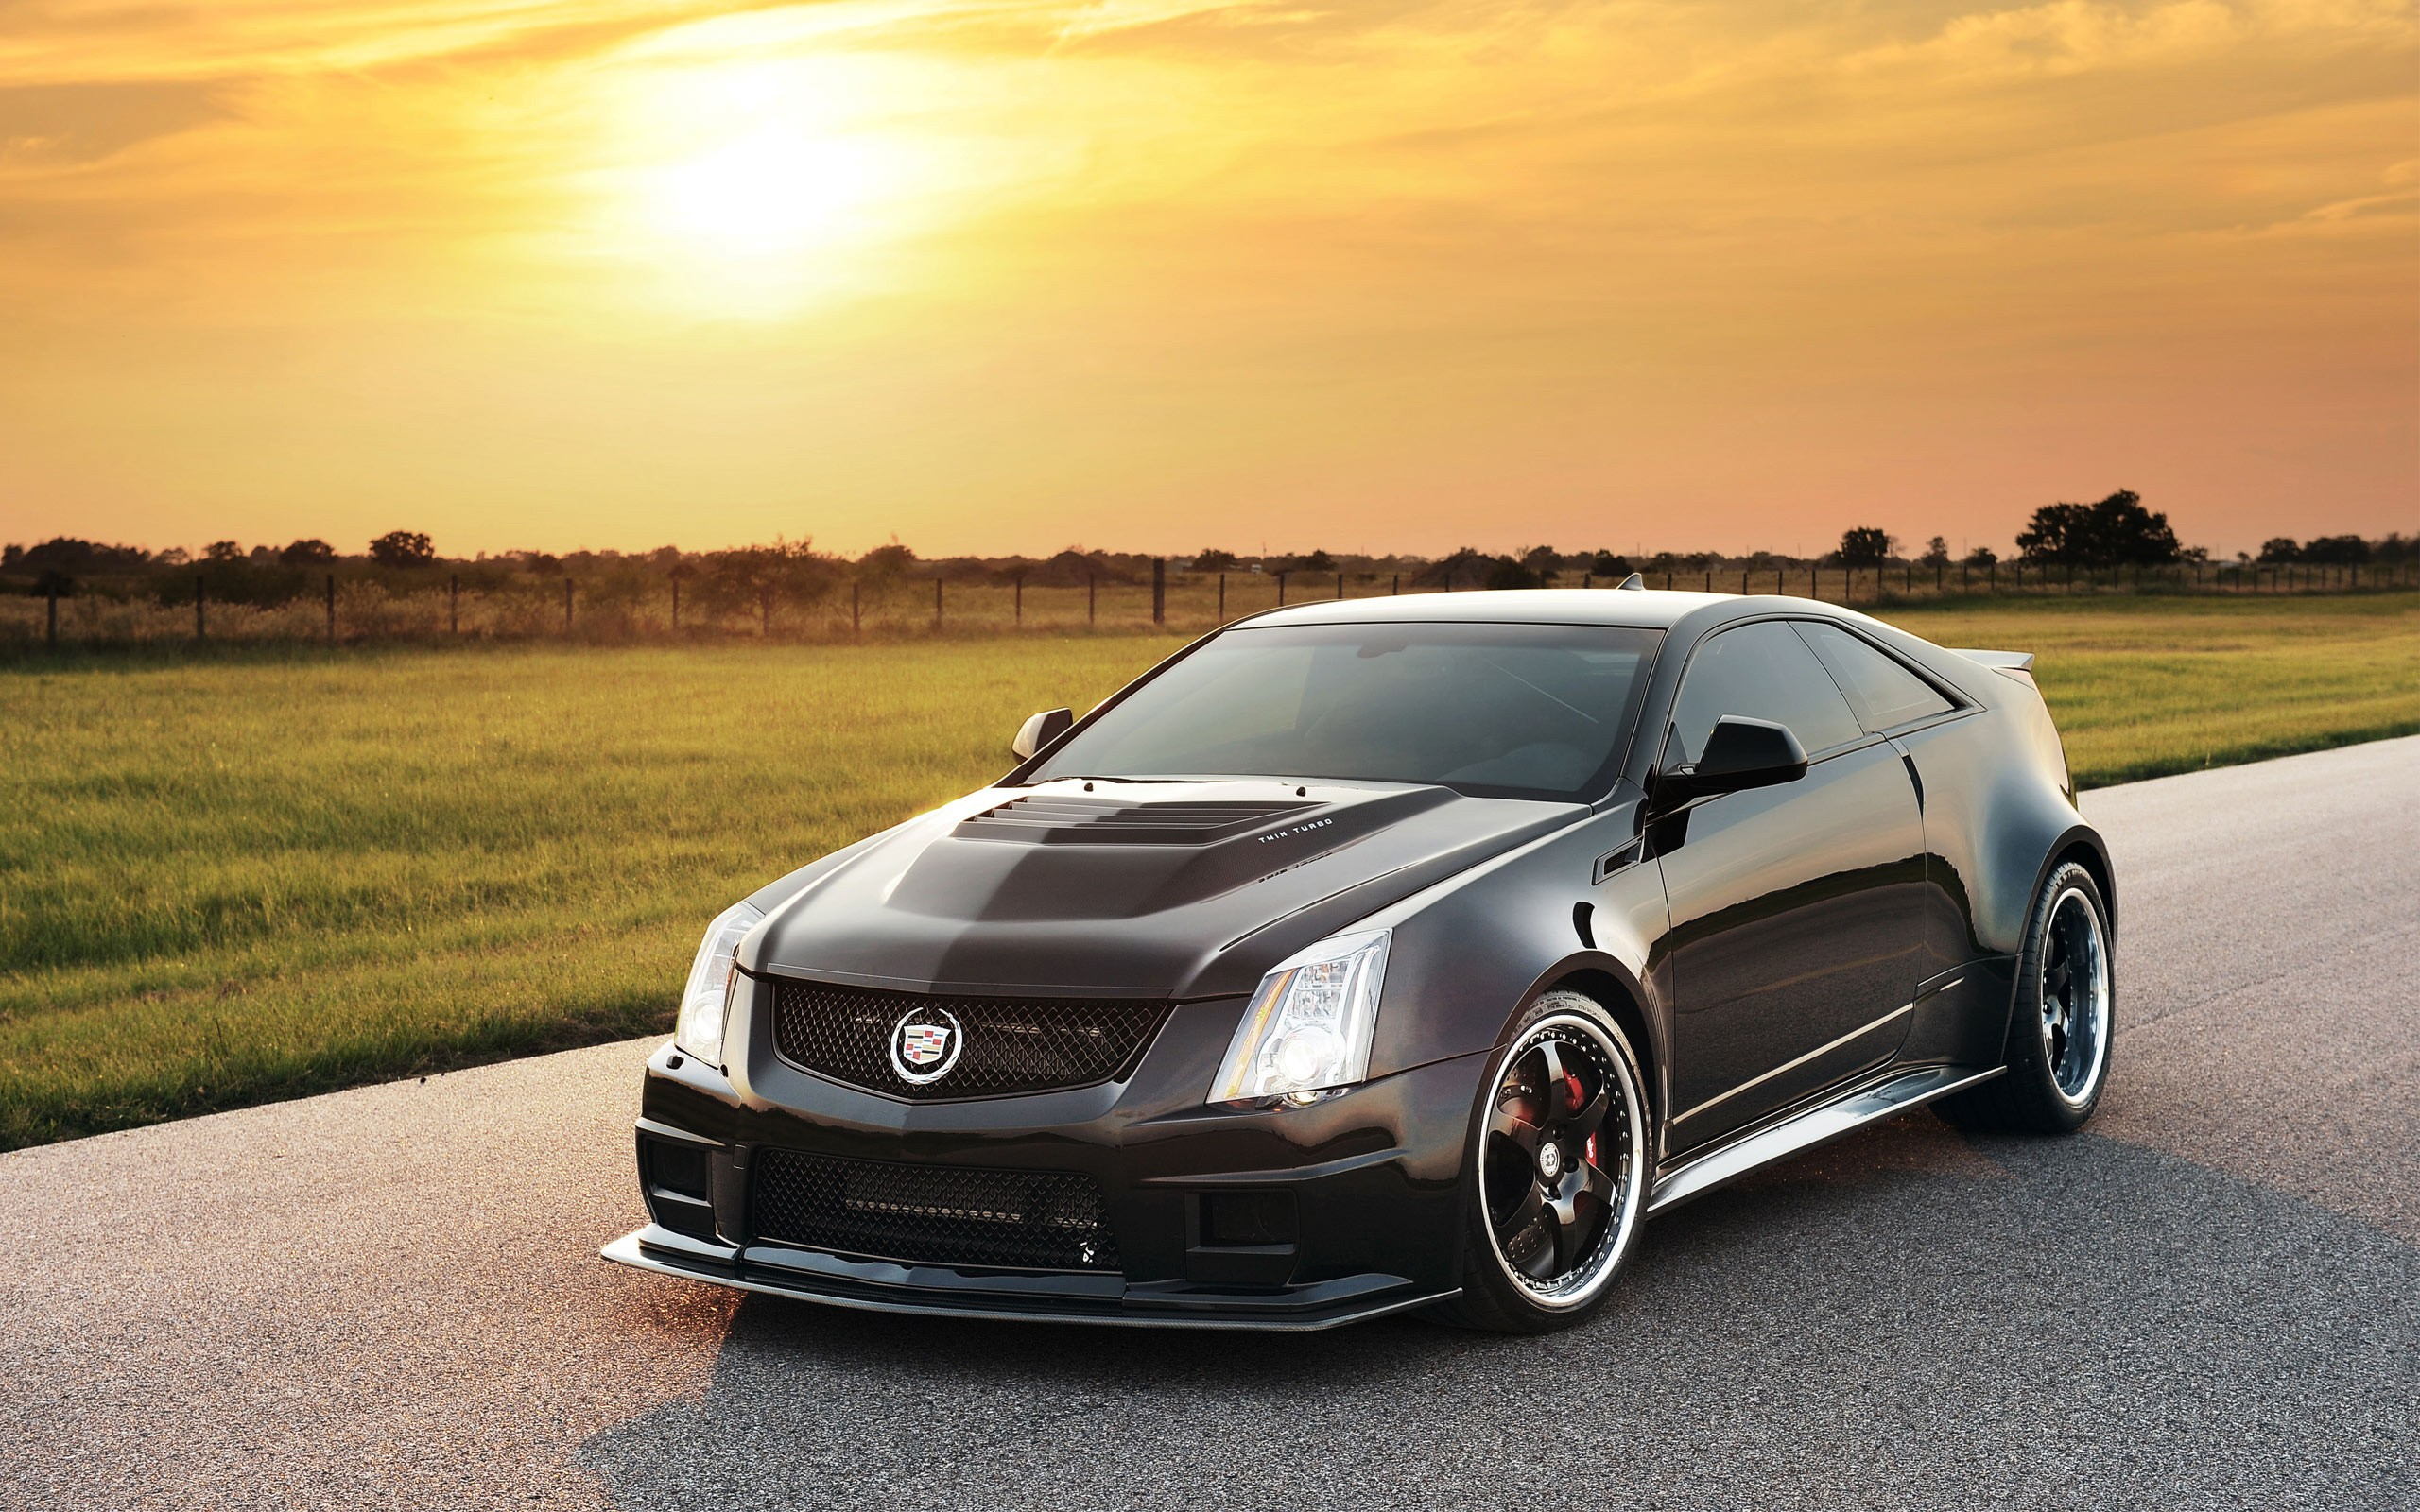 2013 cadillac cts v wallpaper hd car wallpapers id 3073. Black Bedroom Furniture Sets. Home Design Ideas